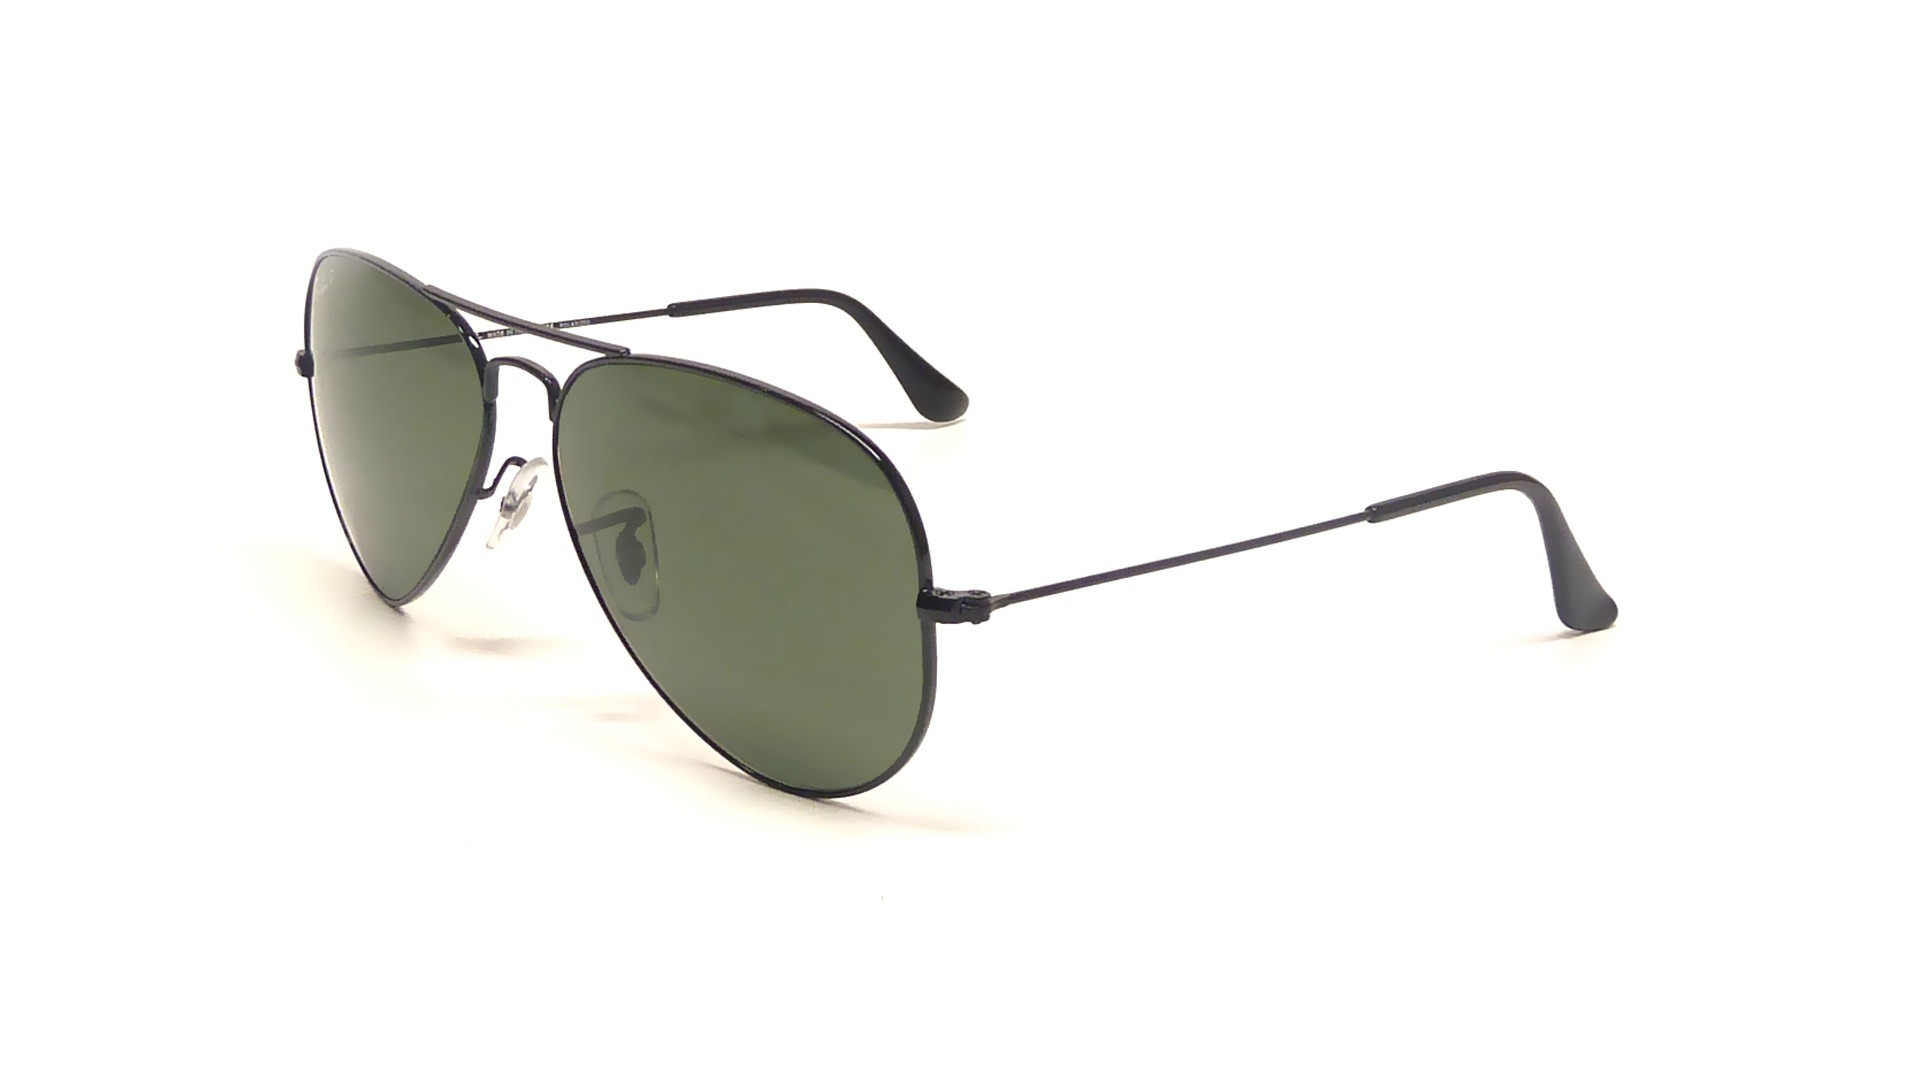 d375491eed0 Sunglasses Ray-Ban Aviator Large Metal Black RB3025 002 58 58-14 Medium  Polarized